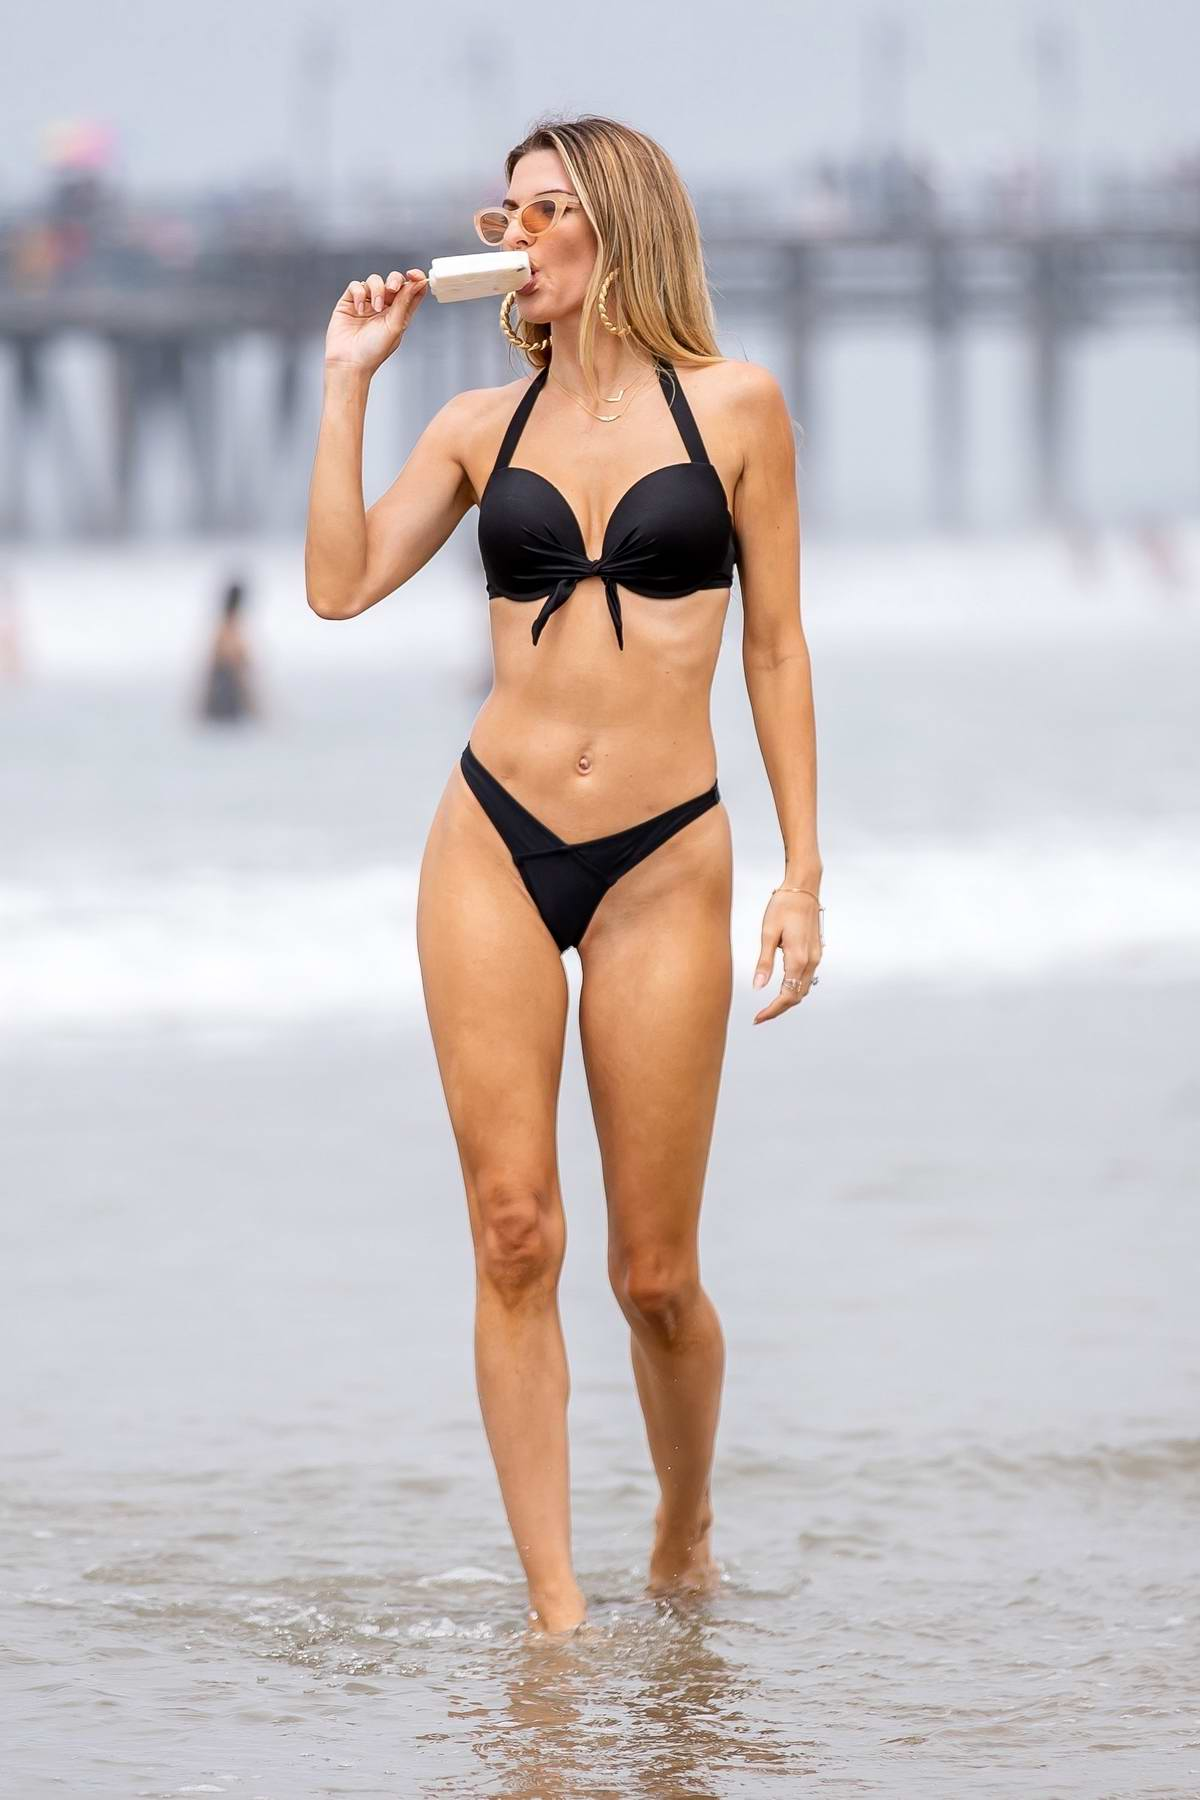 Rachel McCord cools off with an ice cream while she posing in a black bikini at the beach in Santa Monica, California